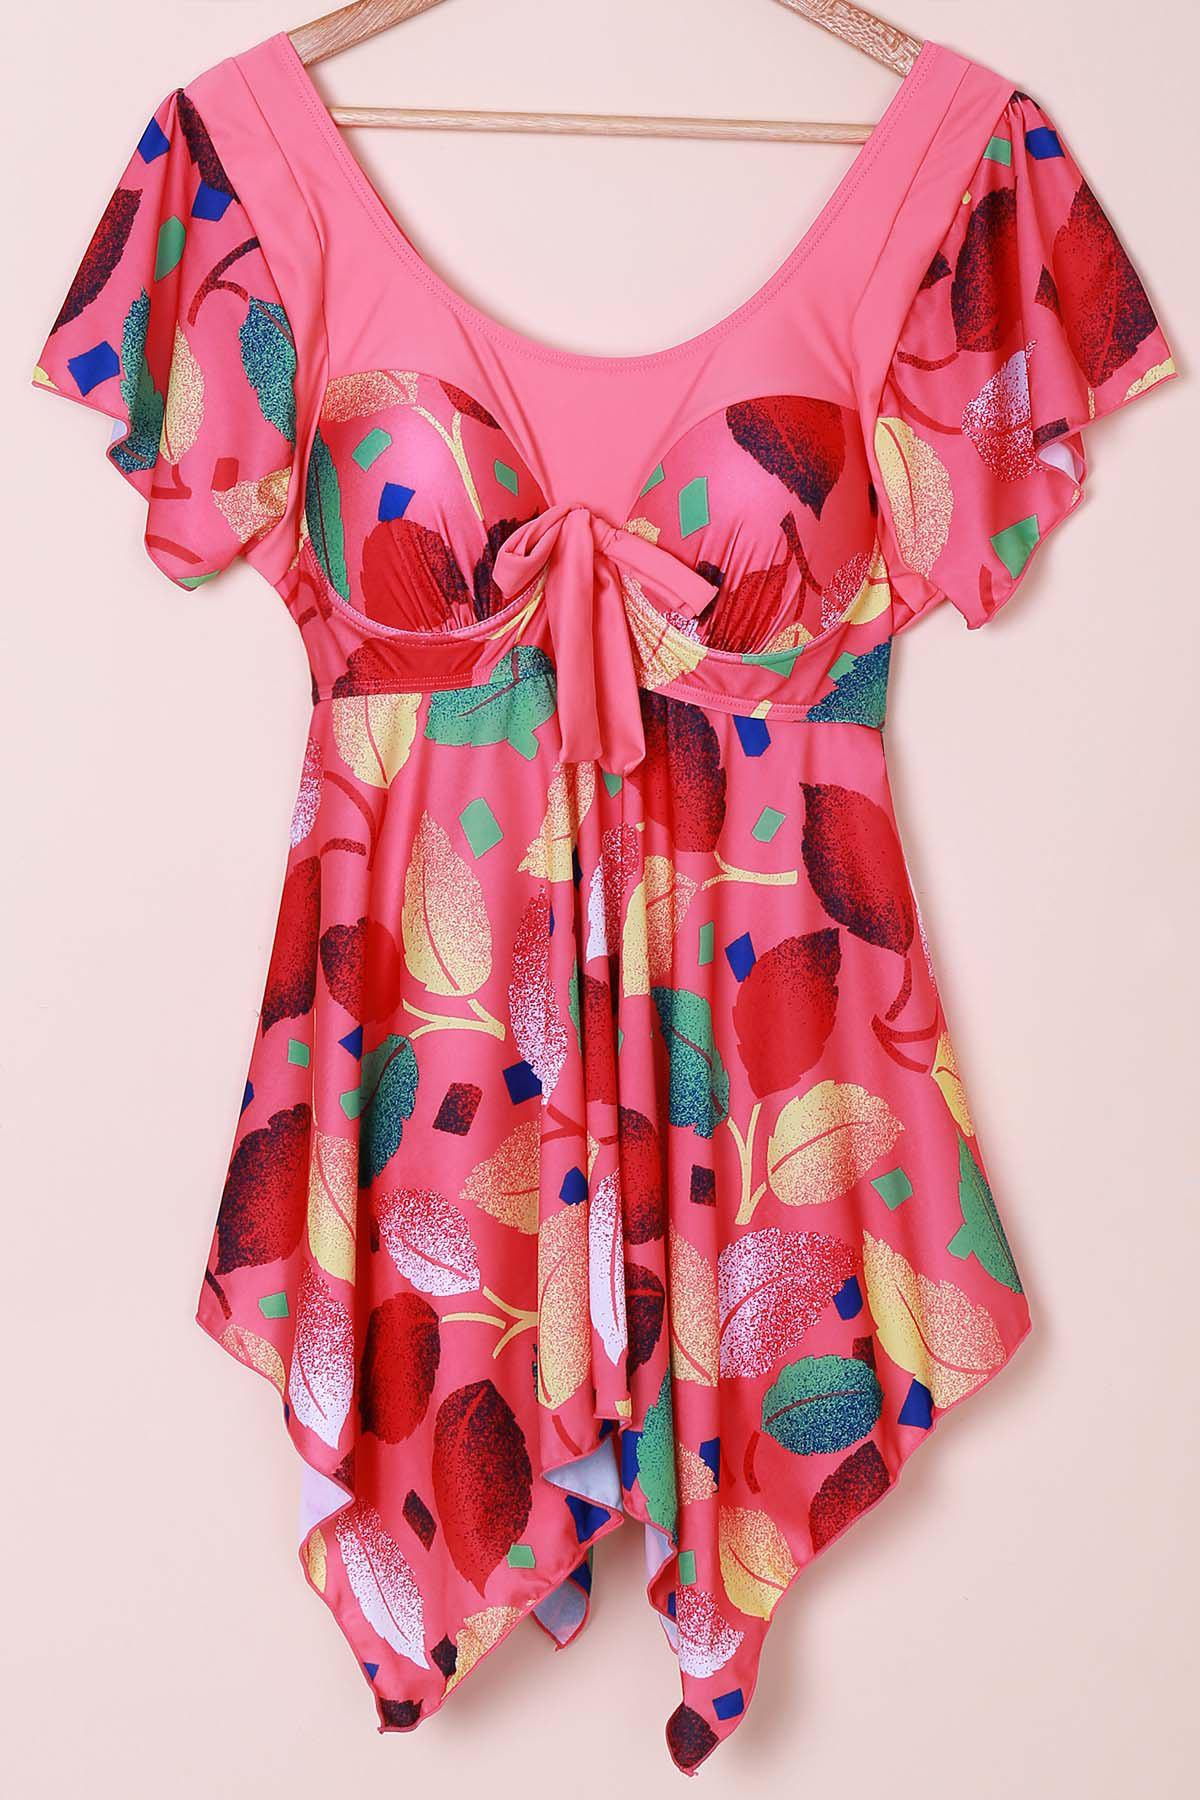 Chic Women's Scoop Neck Leaves Print Short Sleeve Swimsuit - WATERMELON RED XL